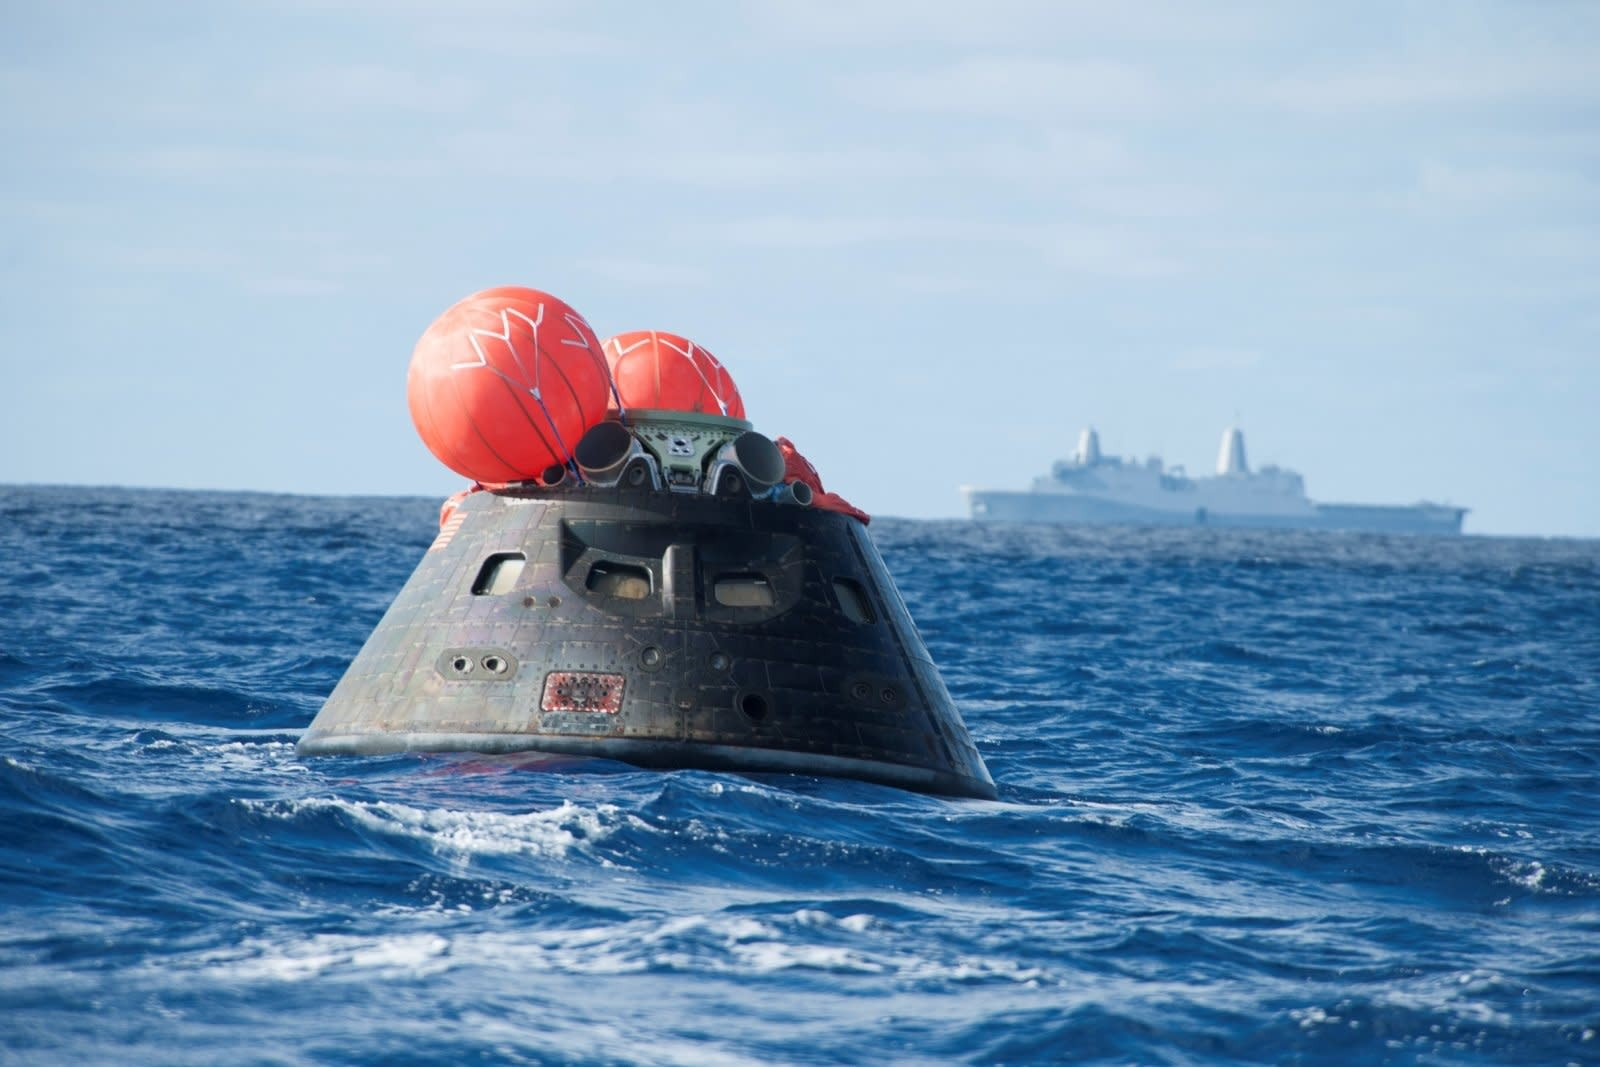 NASA's Orion spacecraft awaits the U.S. Navy's USS Anchorage for a ride home. Orion launched into space on a two-orbit, 4.5-hour test flight at 7:05 am EST on Dec. 5, and safely splashed down in the Pacific Ocean, where a combined team from NASA, the Navy and Orion prime contractor Lockheed Martin retrieved it for return to shore on board the Anchorage. It is expected to be off loaded at Naval Base San Diego on Monday. (Photo by VCG Wilson/Corbis via Getty Images)